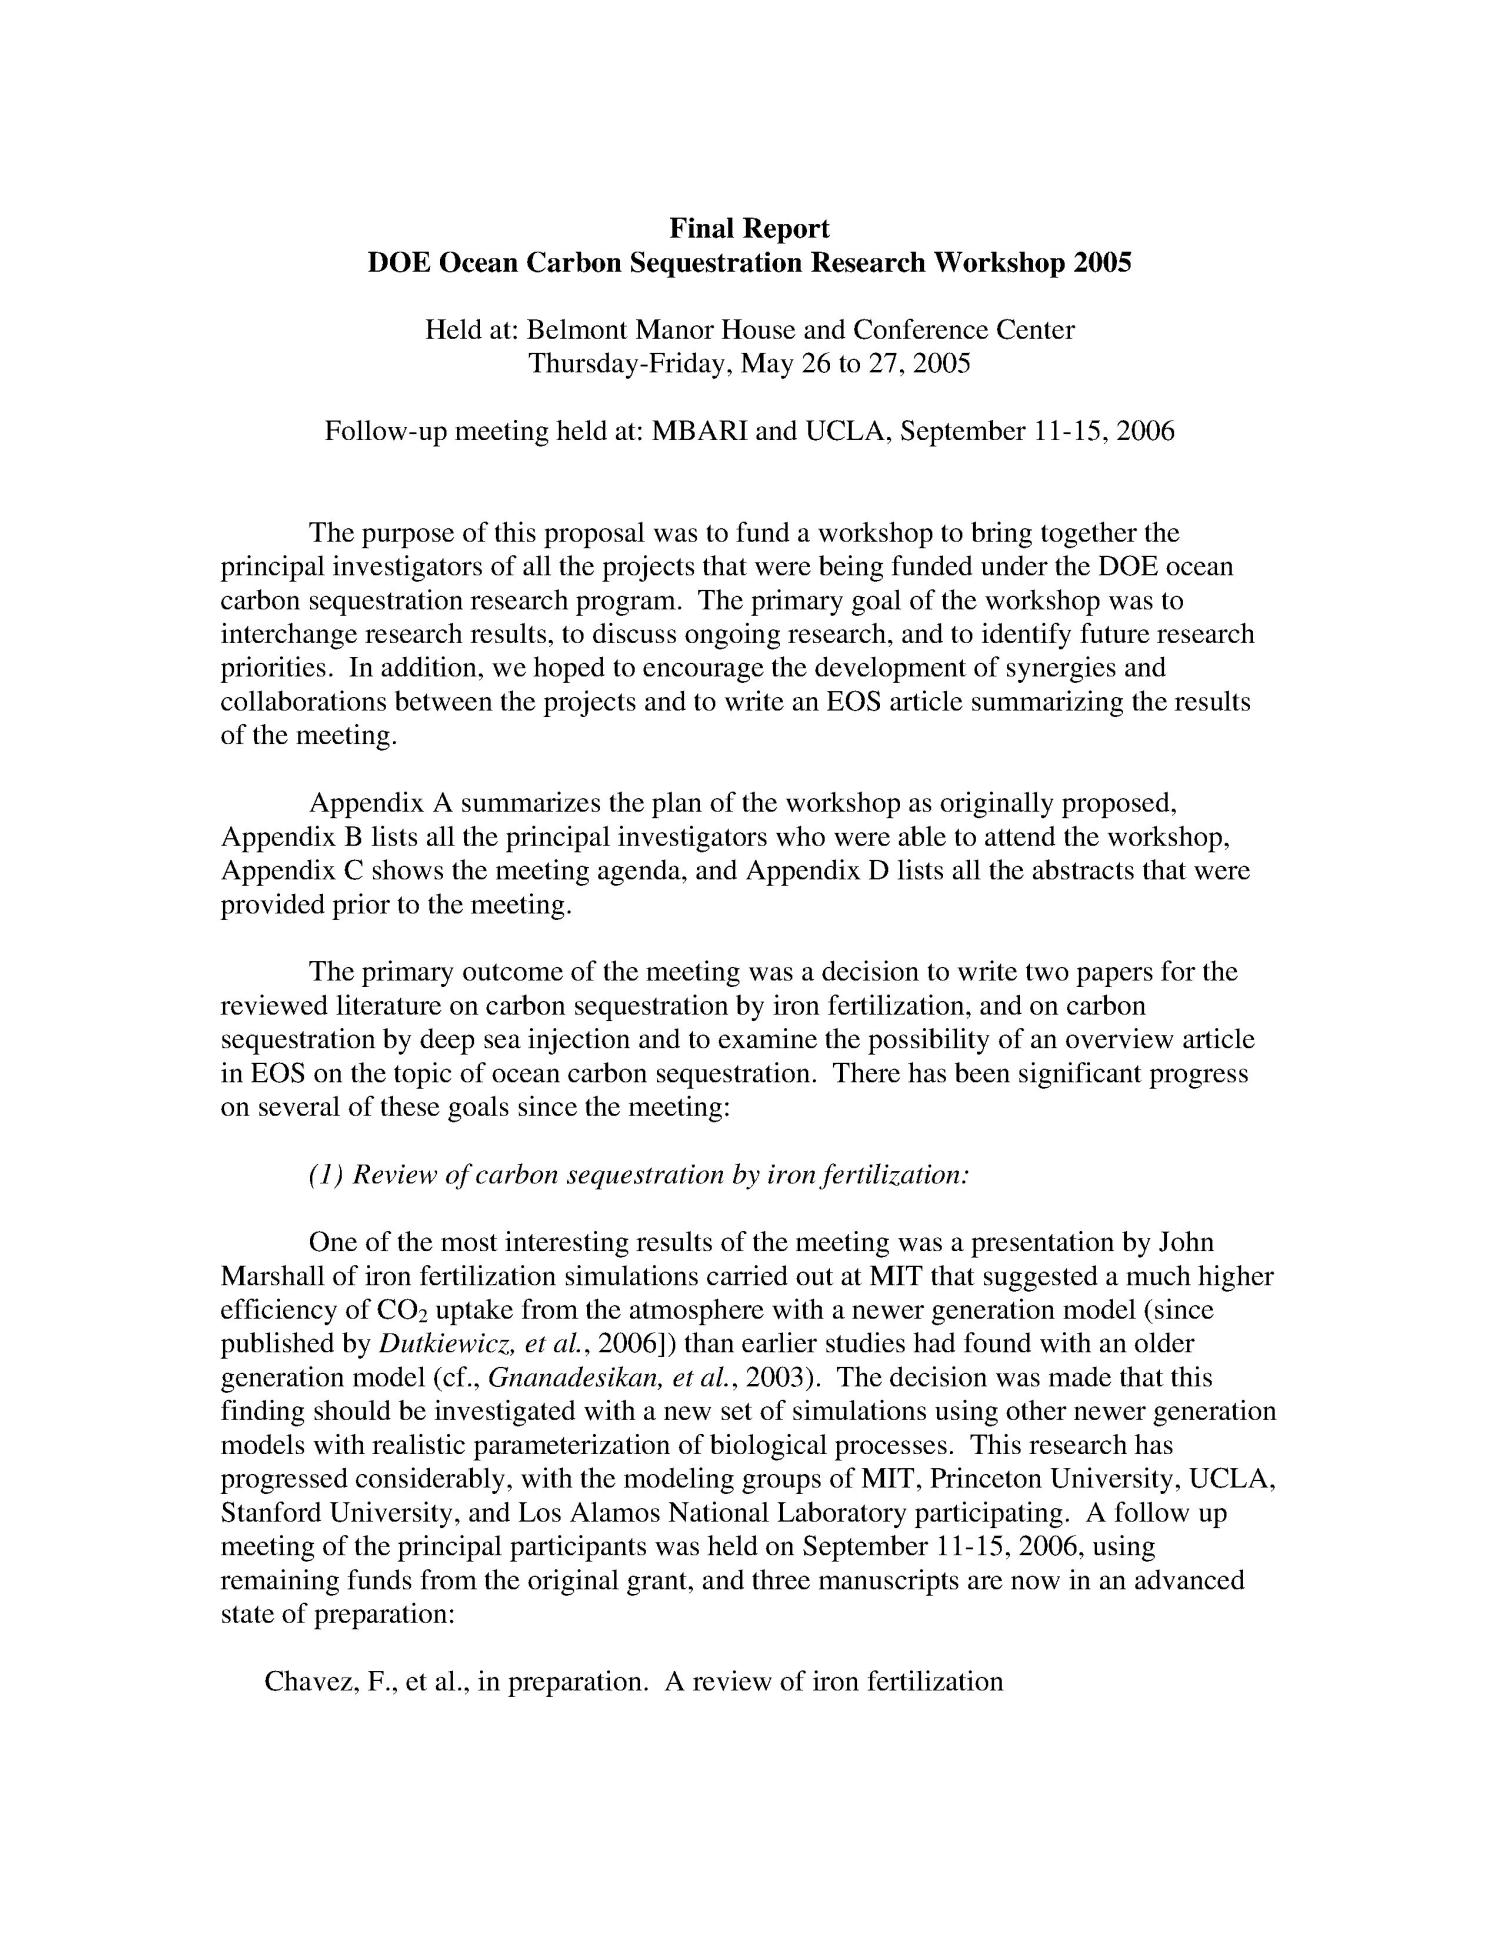 DOE Ocean Carbon Sequestration Research Workshop 29 - May 29th